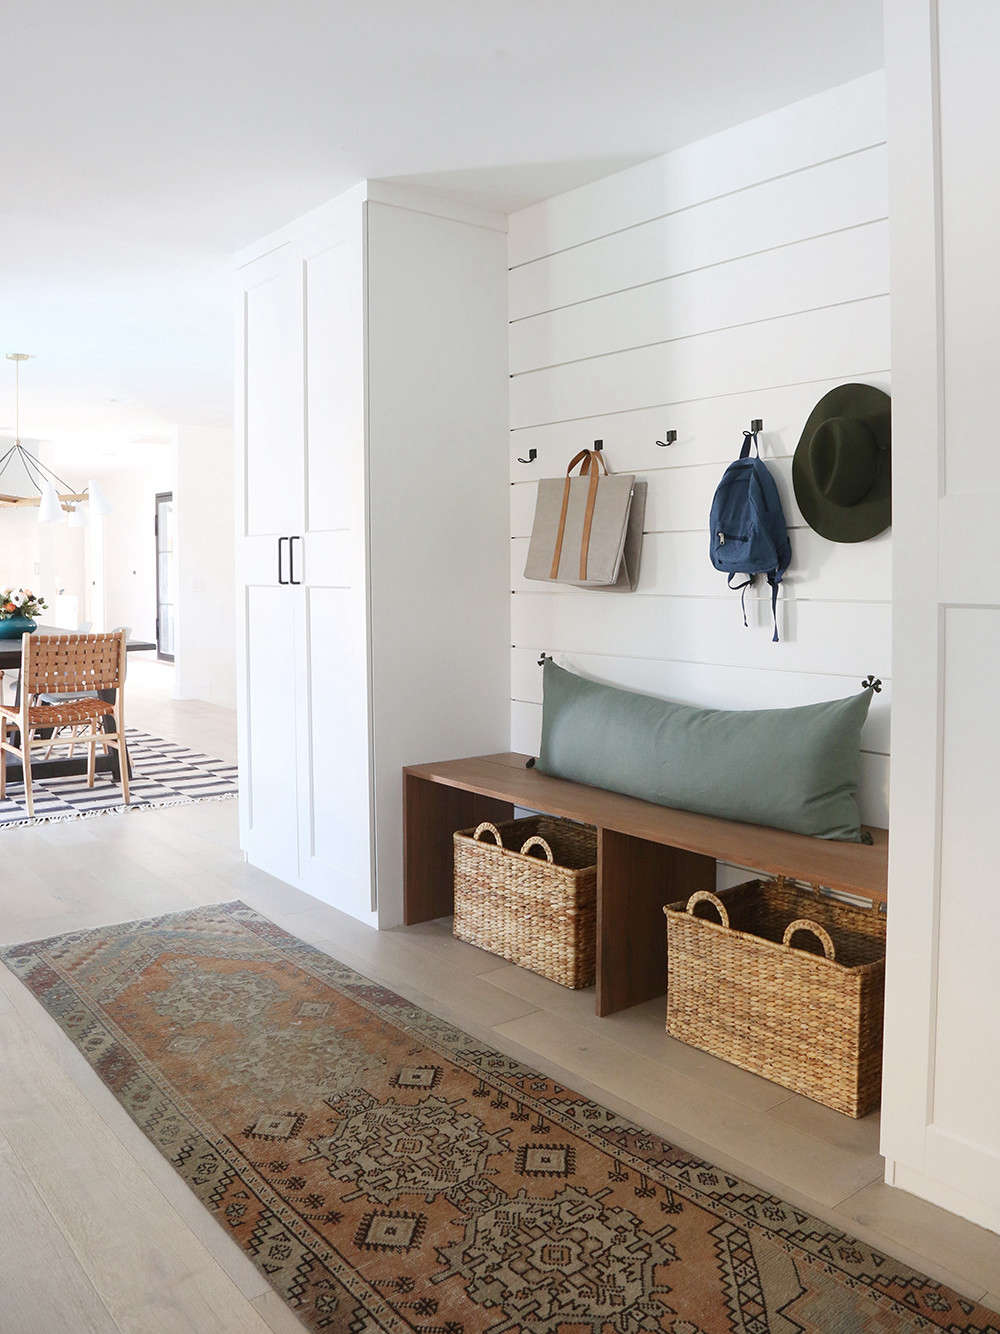 Steal This Look: A DIY Scandi-Style Mudroom by Jenny Komenda - The Organized Home